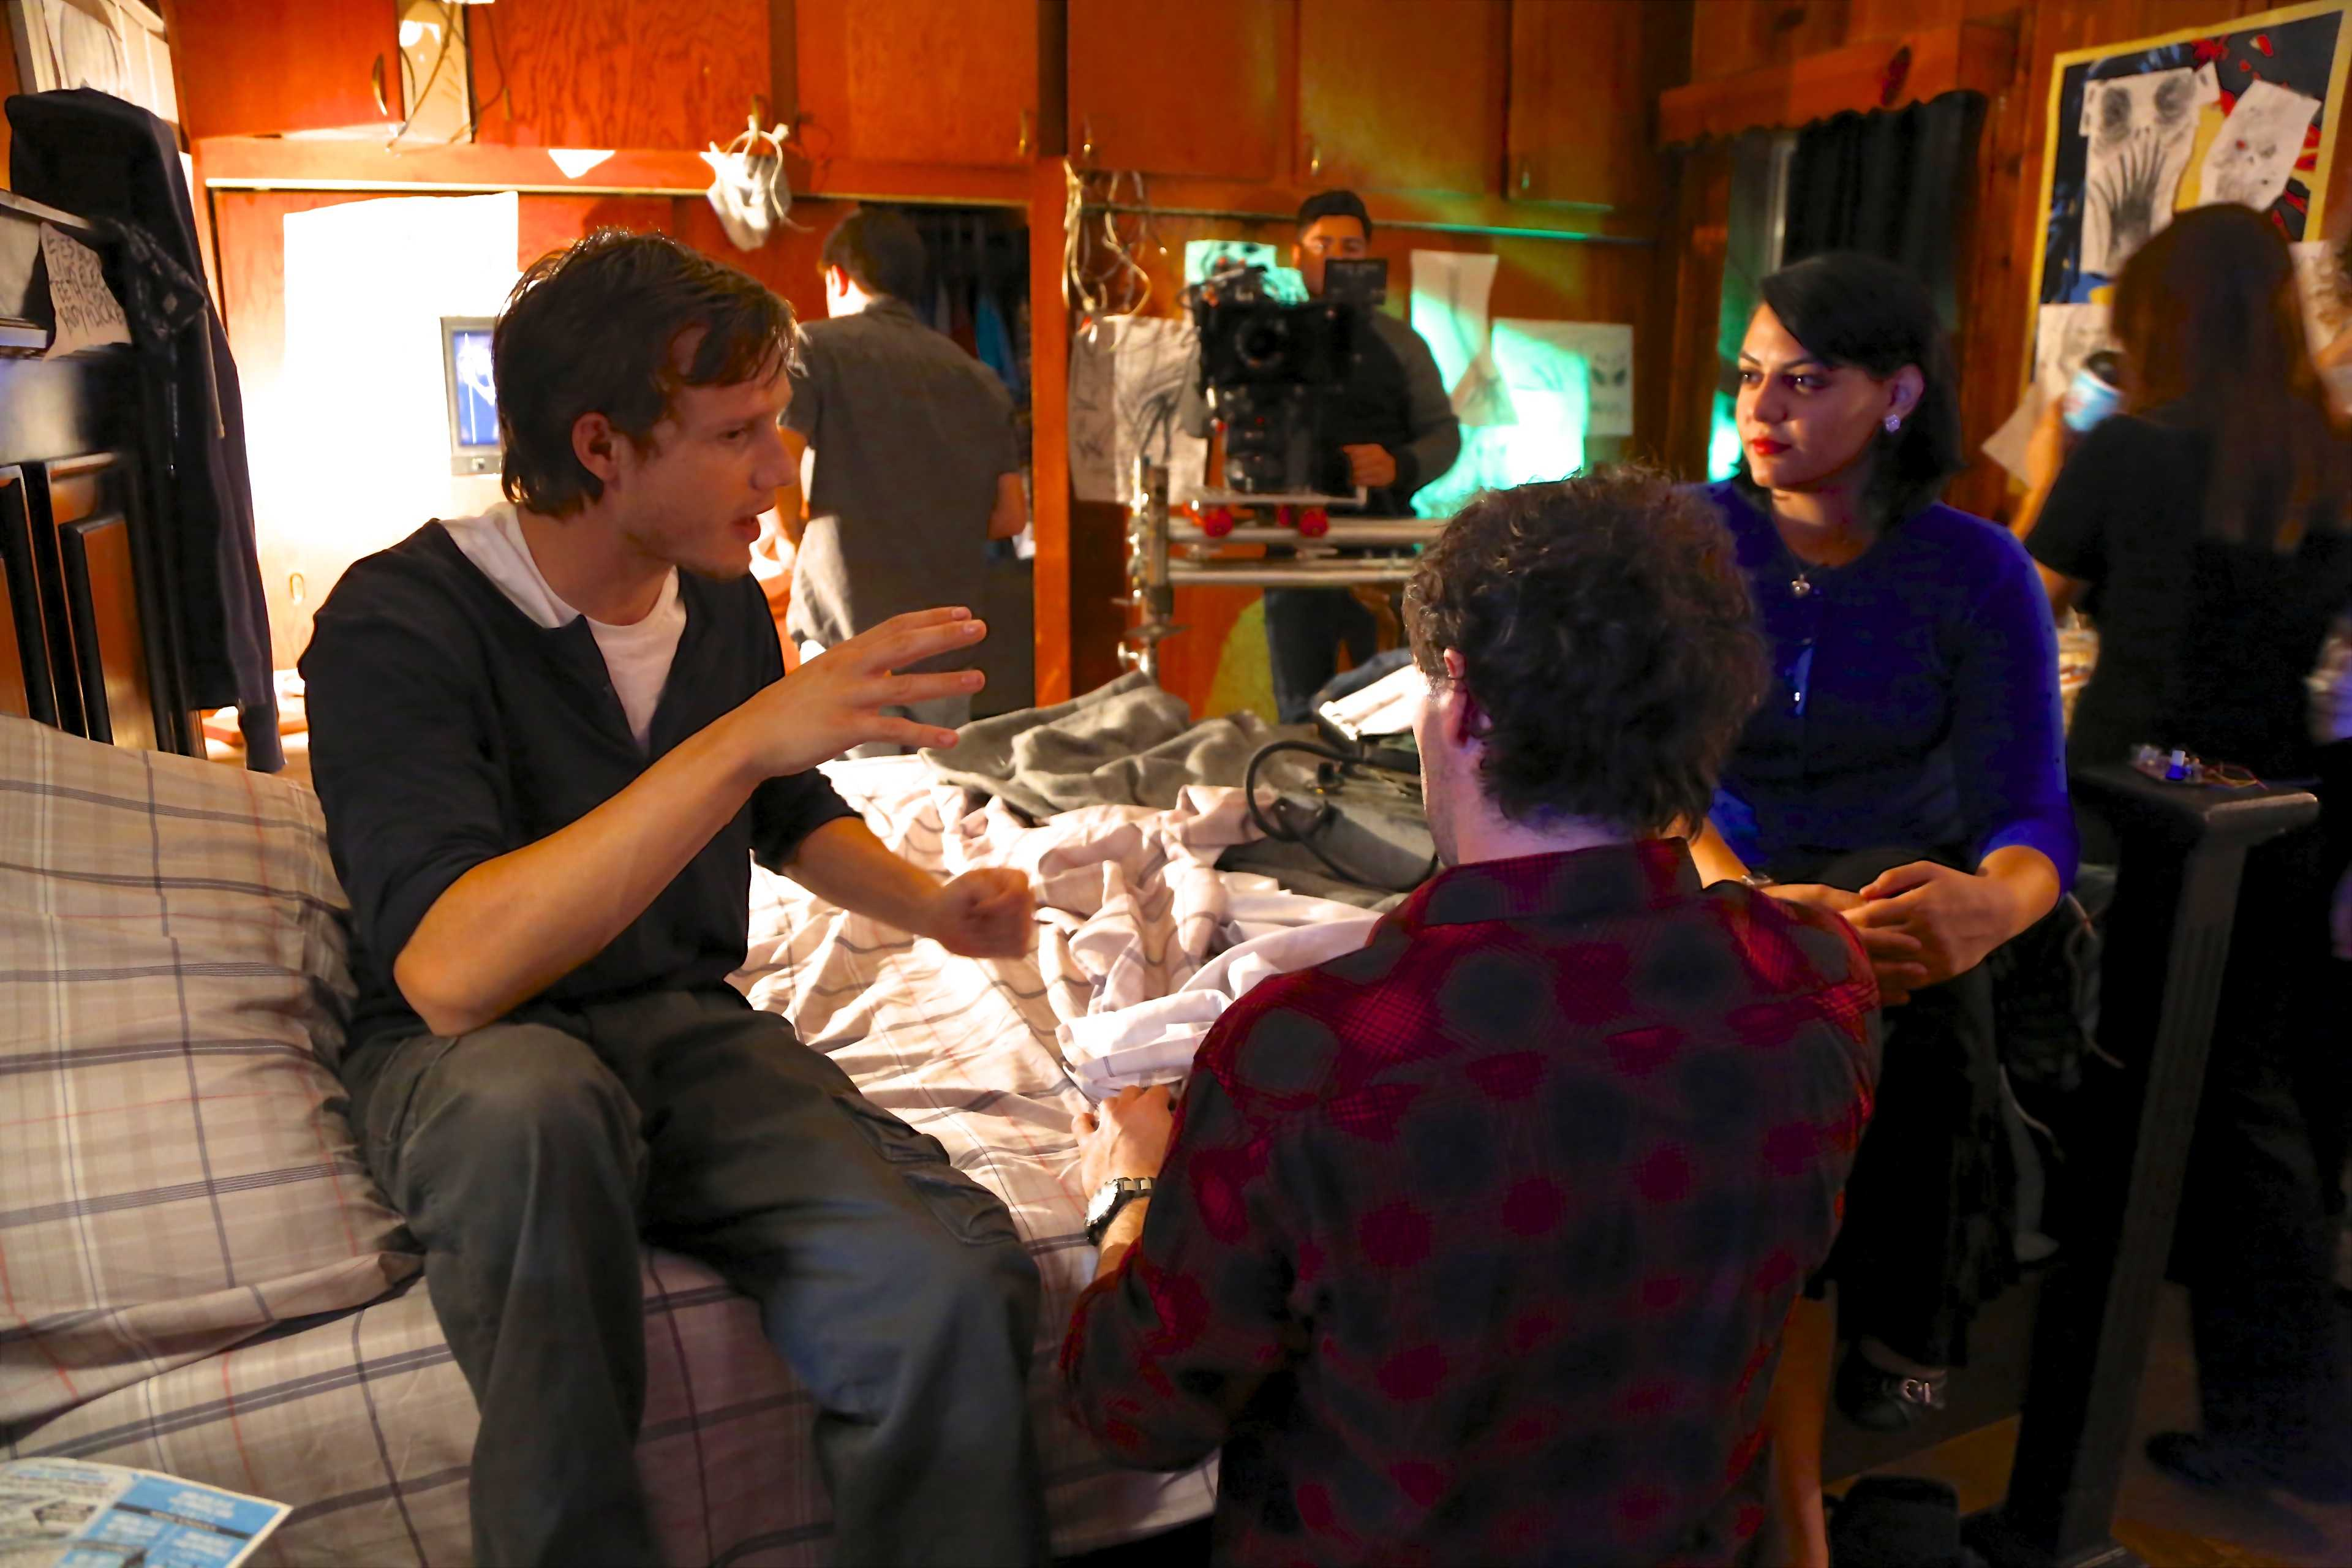 Sahar El-Ghali working on set with the main actors David A. Jørgensen and Joseph Barone.